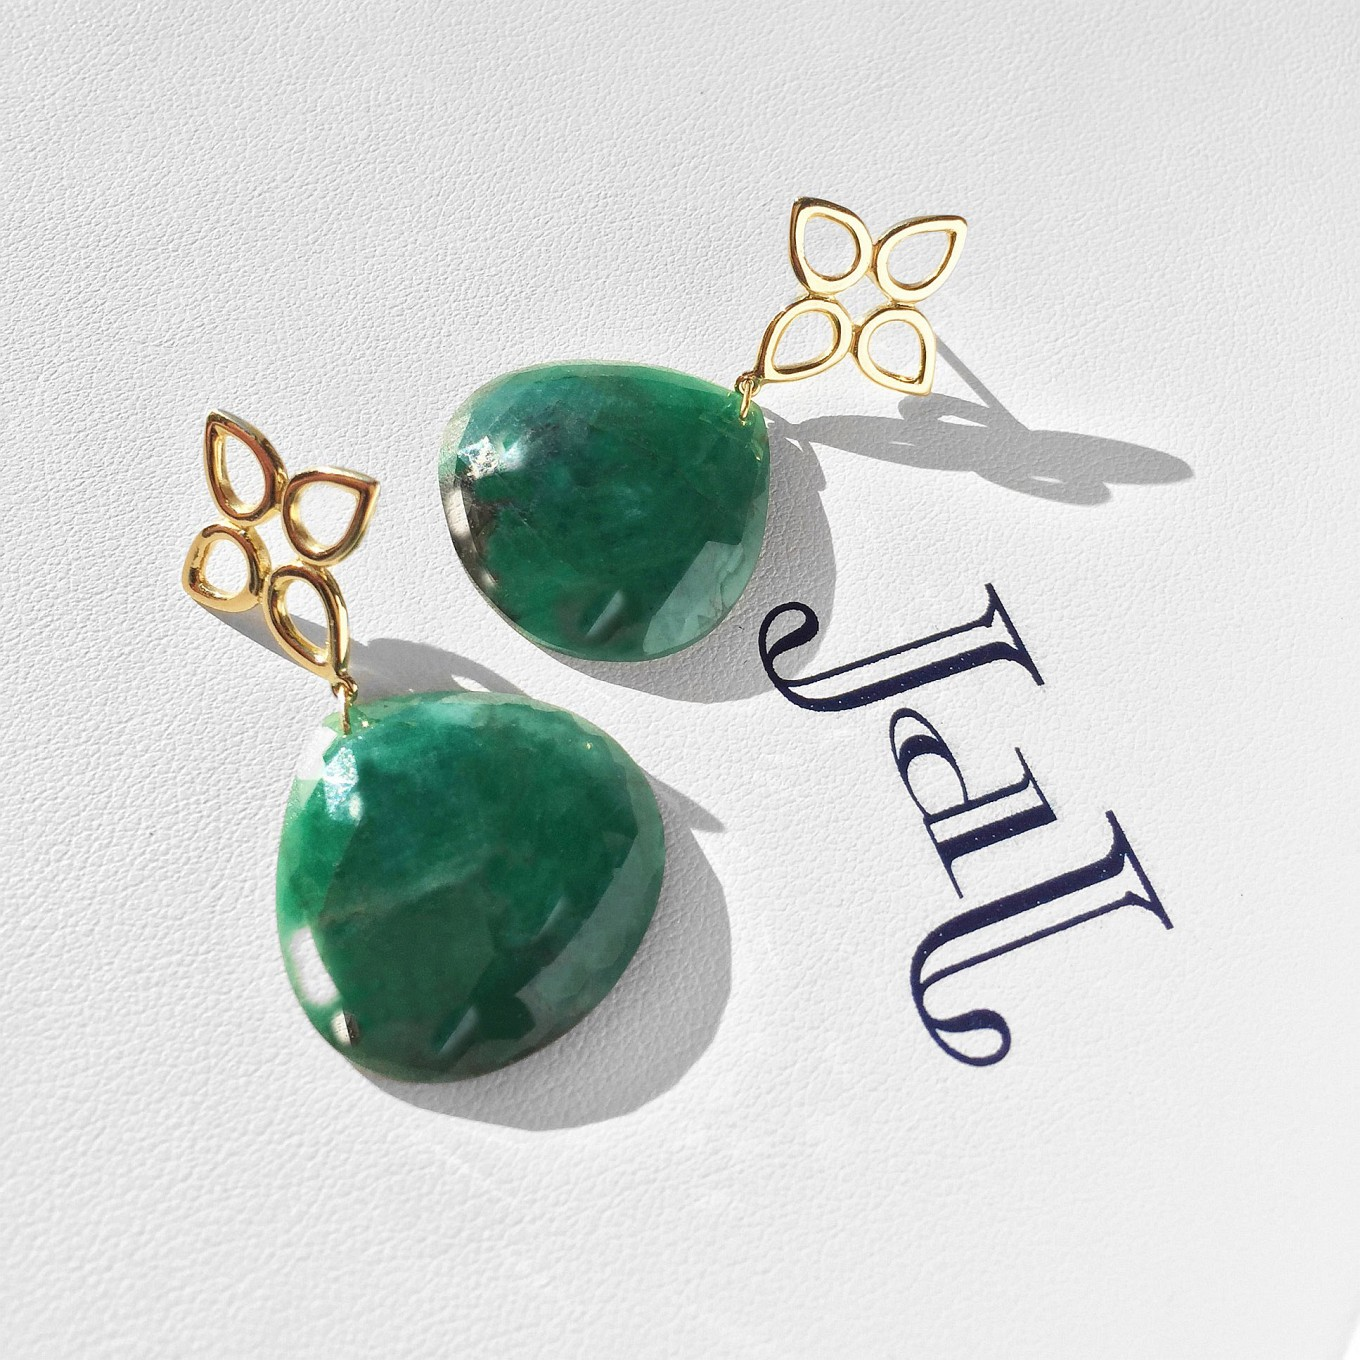 Rose Cut Emerald Earrings